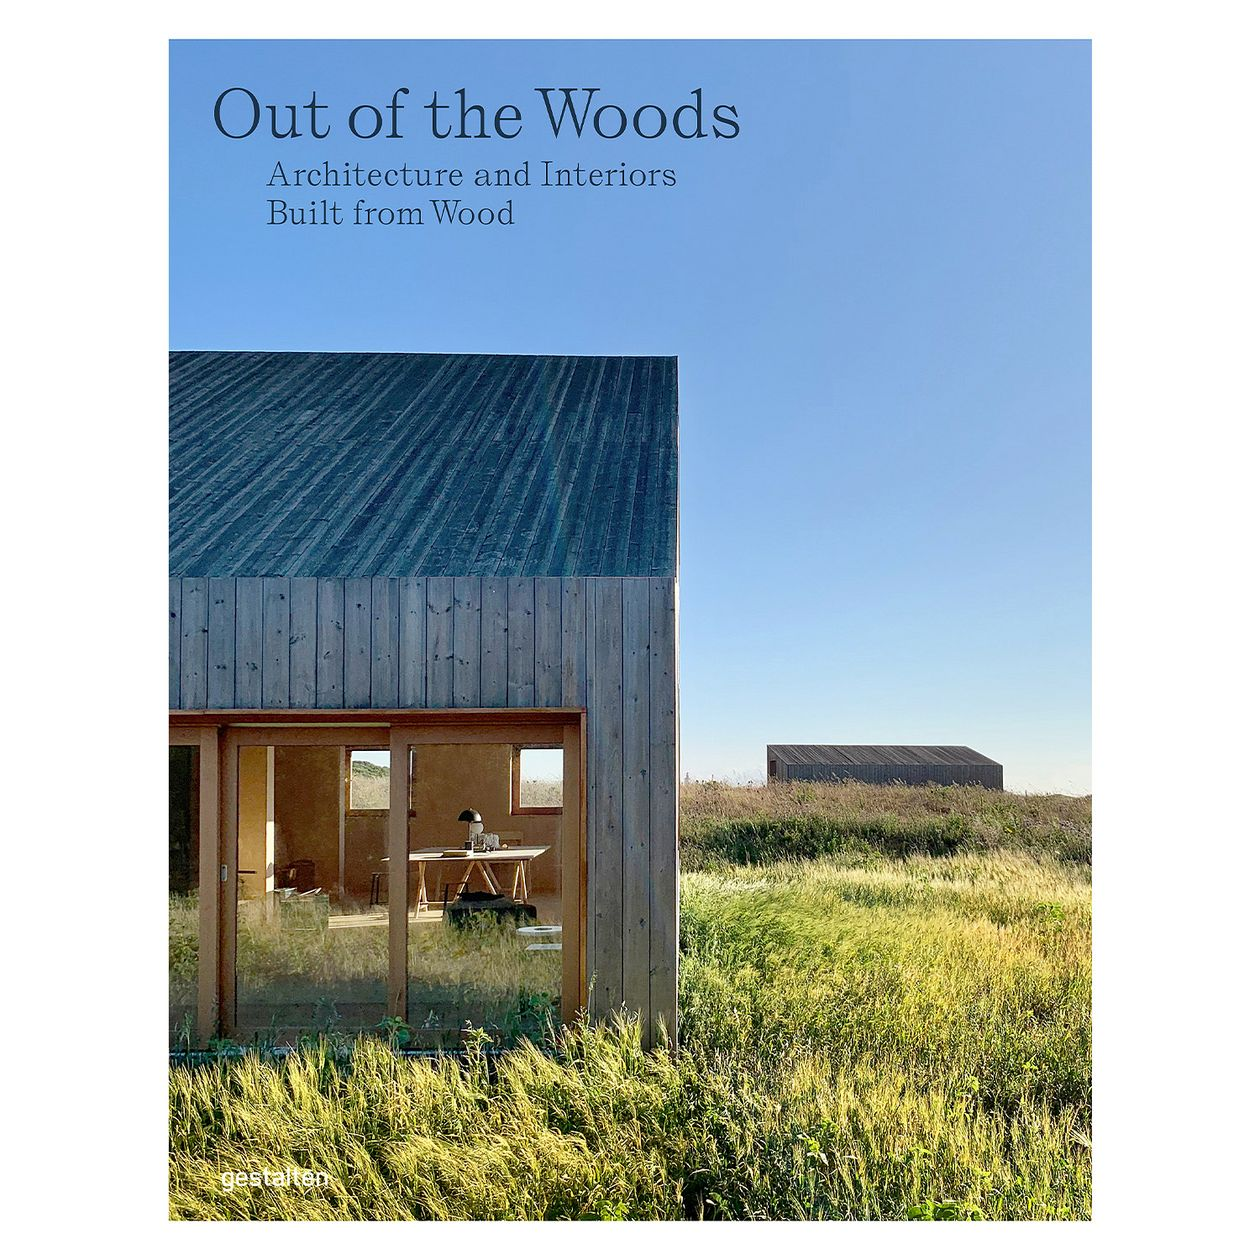 Out of Woods: Architecture and Interiors Built from Wood